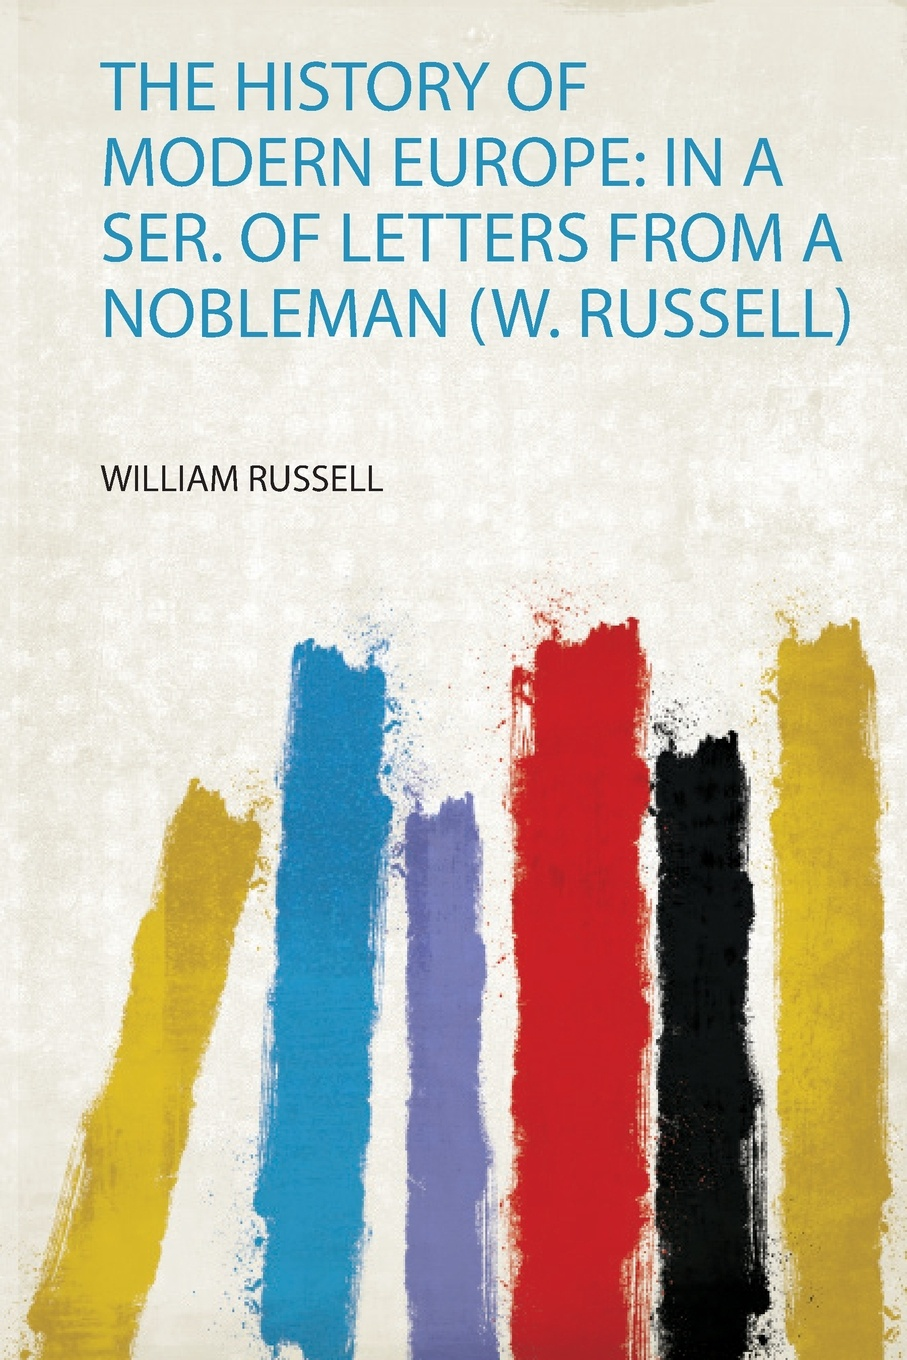 цена на William Russell The History of Modern Europe. in a Ser. of Letters from a Nobleman (W. Russell)